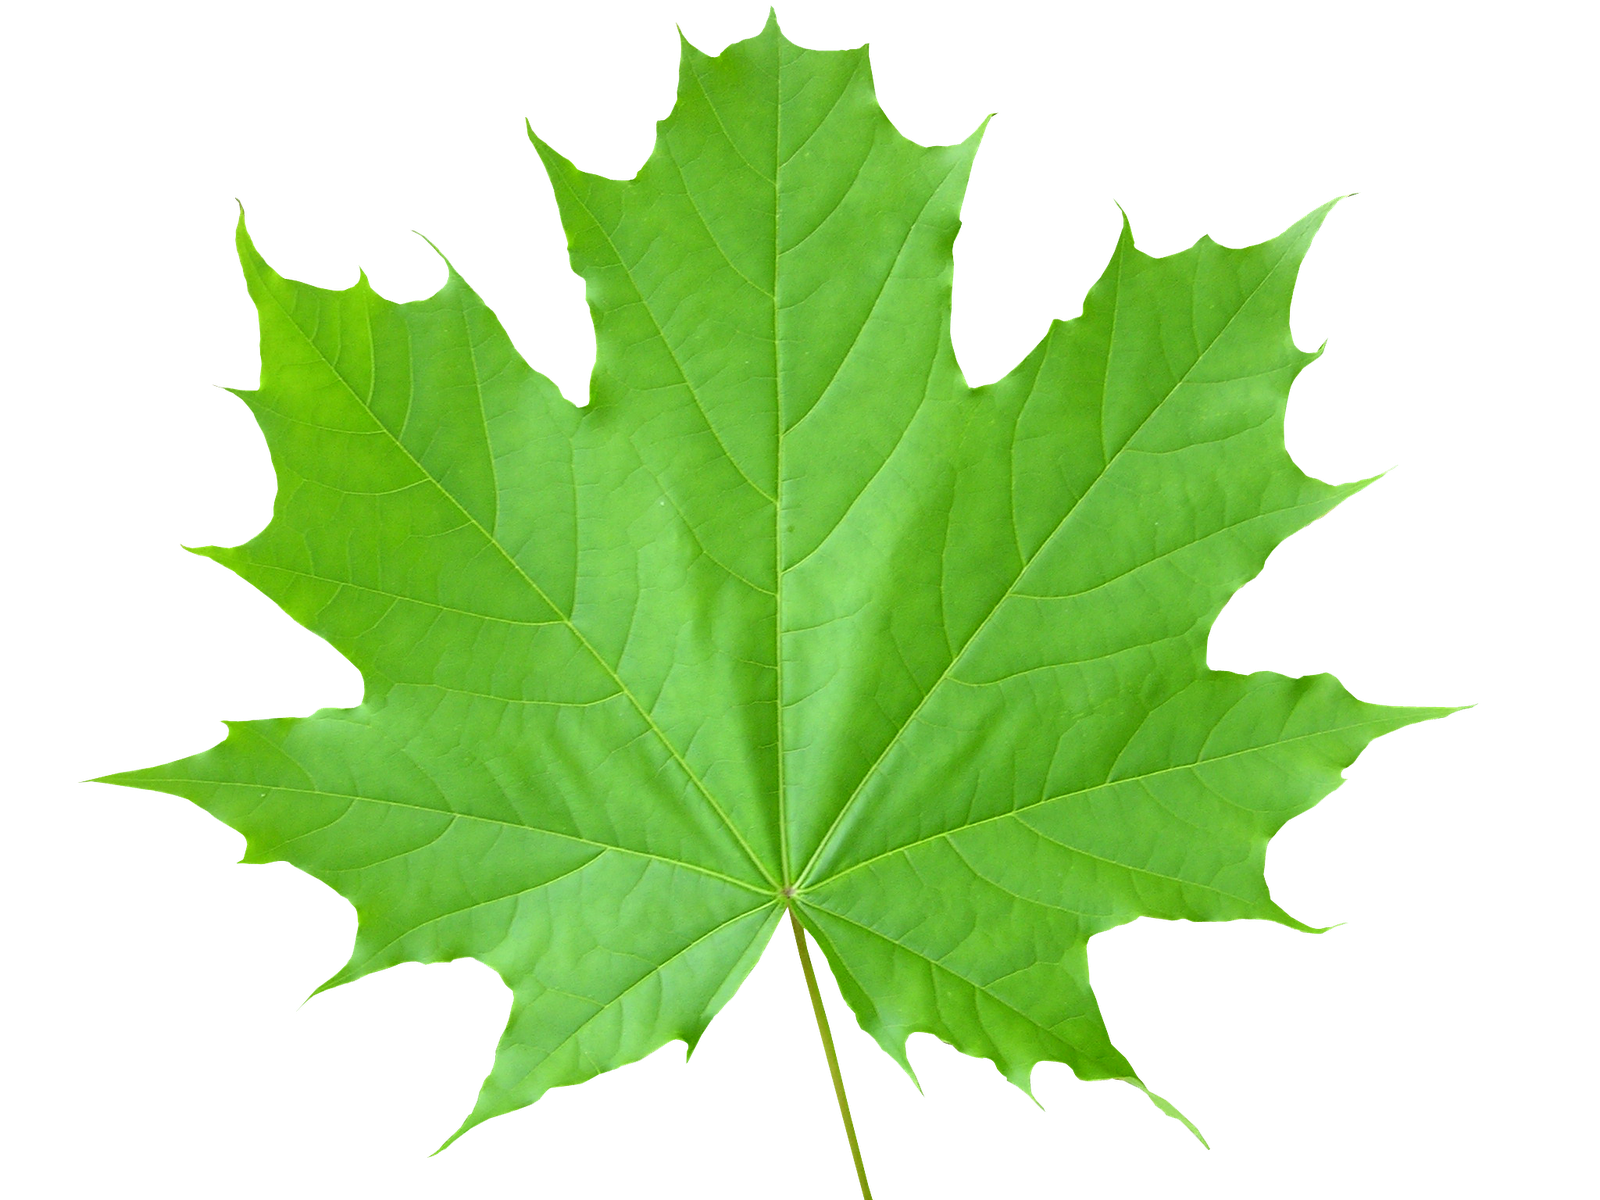 Green leaves PNG images